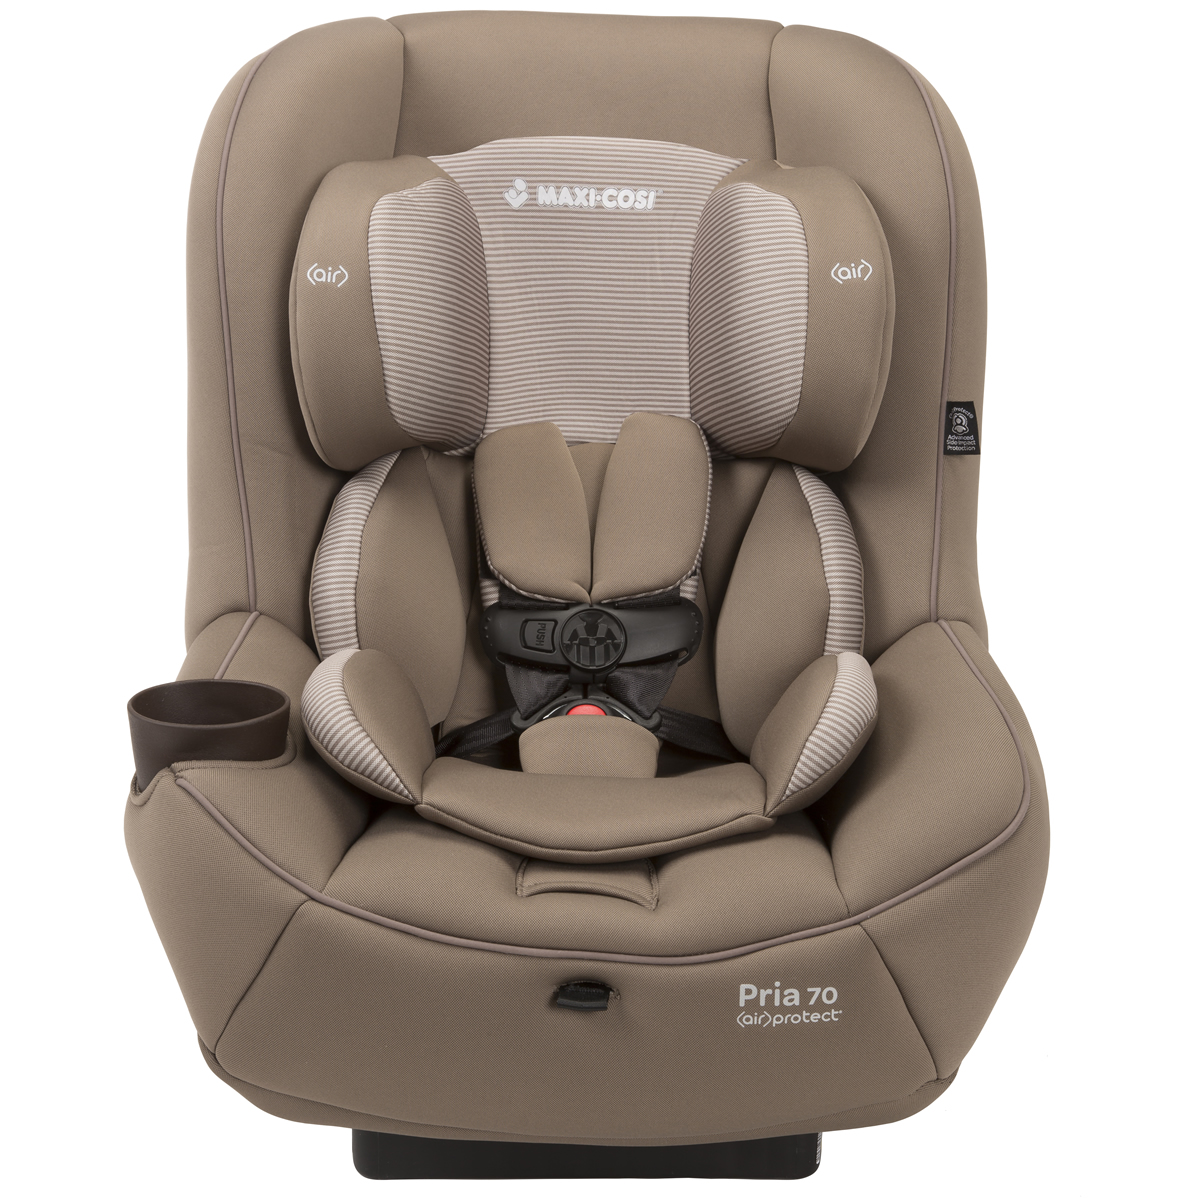 MAXI-COSI Pria 70 Convertible Car Seat - Brown Earth